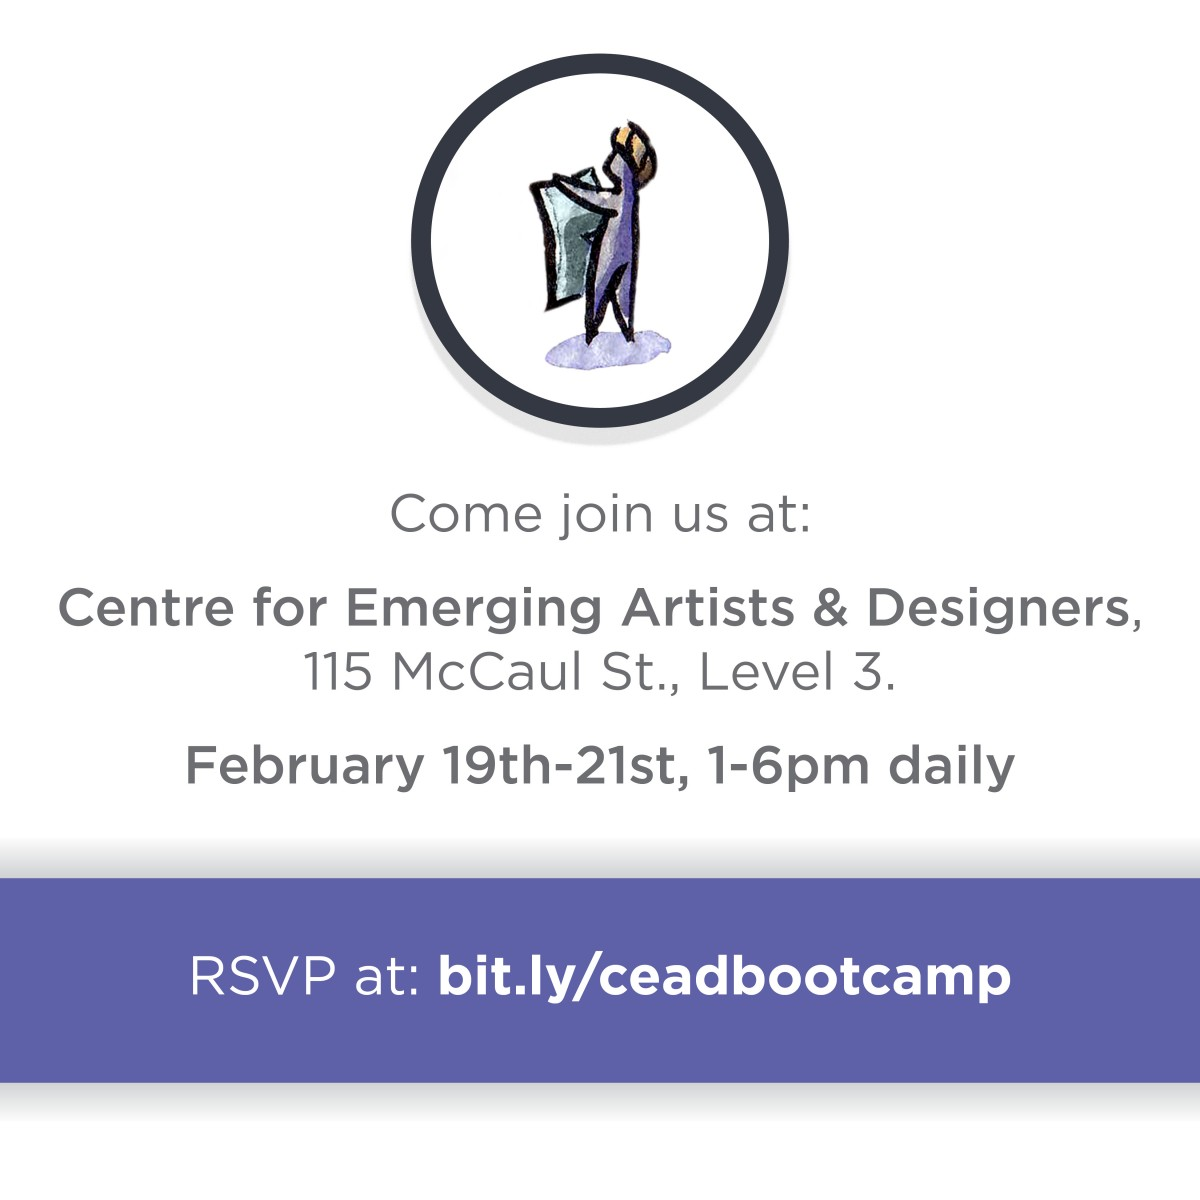 Bootcamp image with circle and person speaking then event info listed